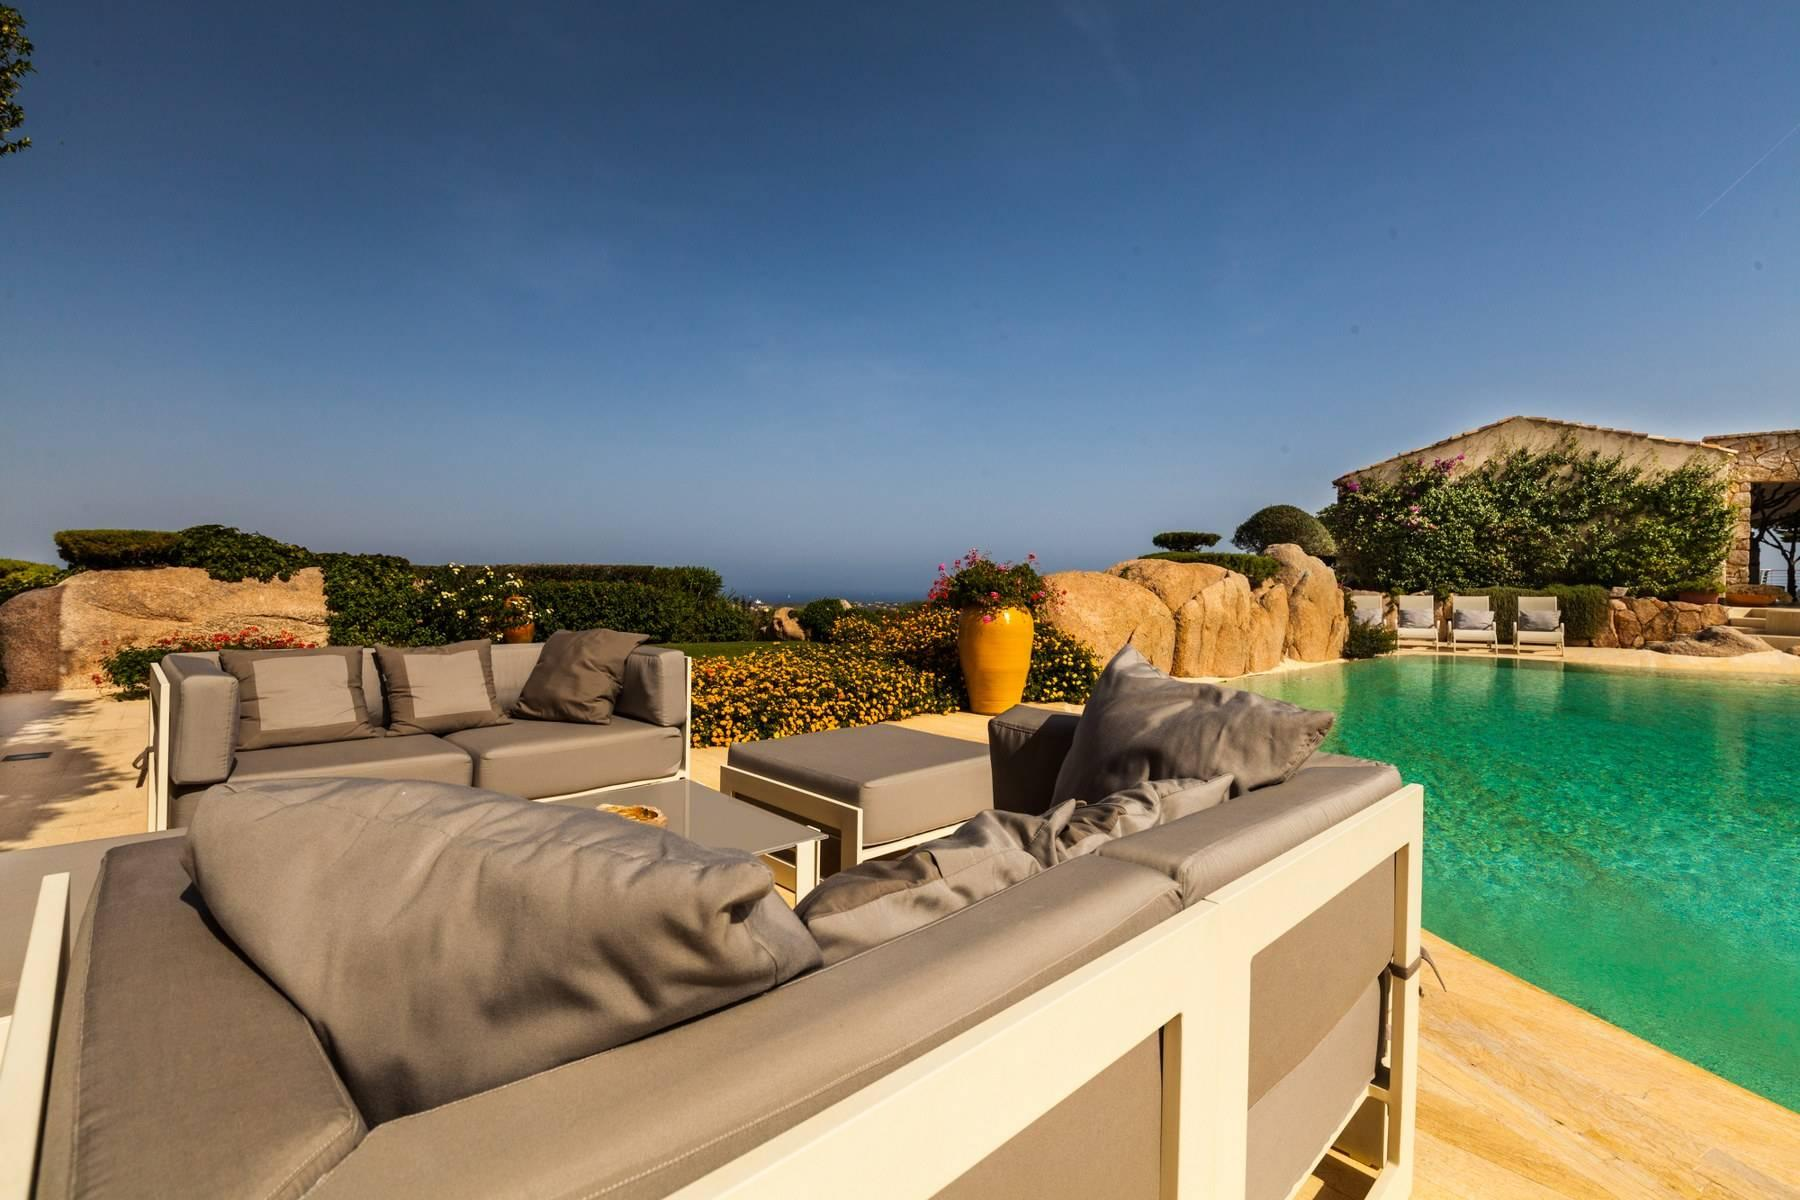 Exclusive property with stunning sea views overlooking the Costa Smeralda - 2